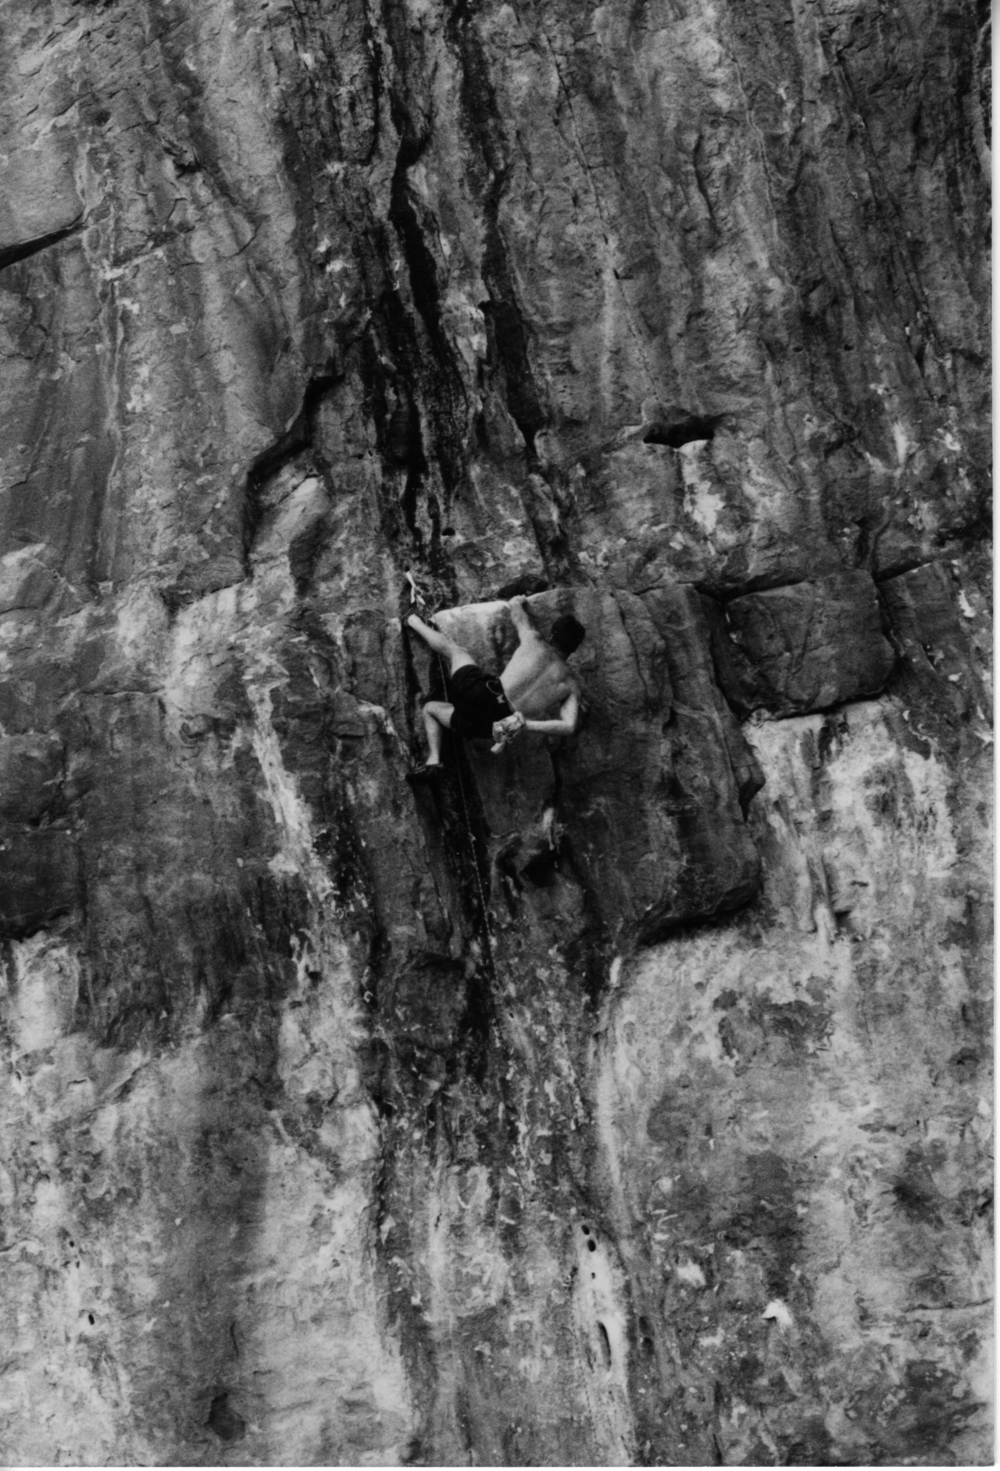 Climbing  Daniel-Or-Tiger  (30), Sandinista Wall, Mt. Staplyton, Grampians, January '97. An excellent route established by Martin Scheel in 1989.